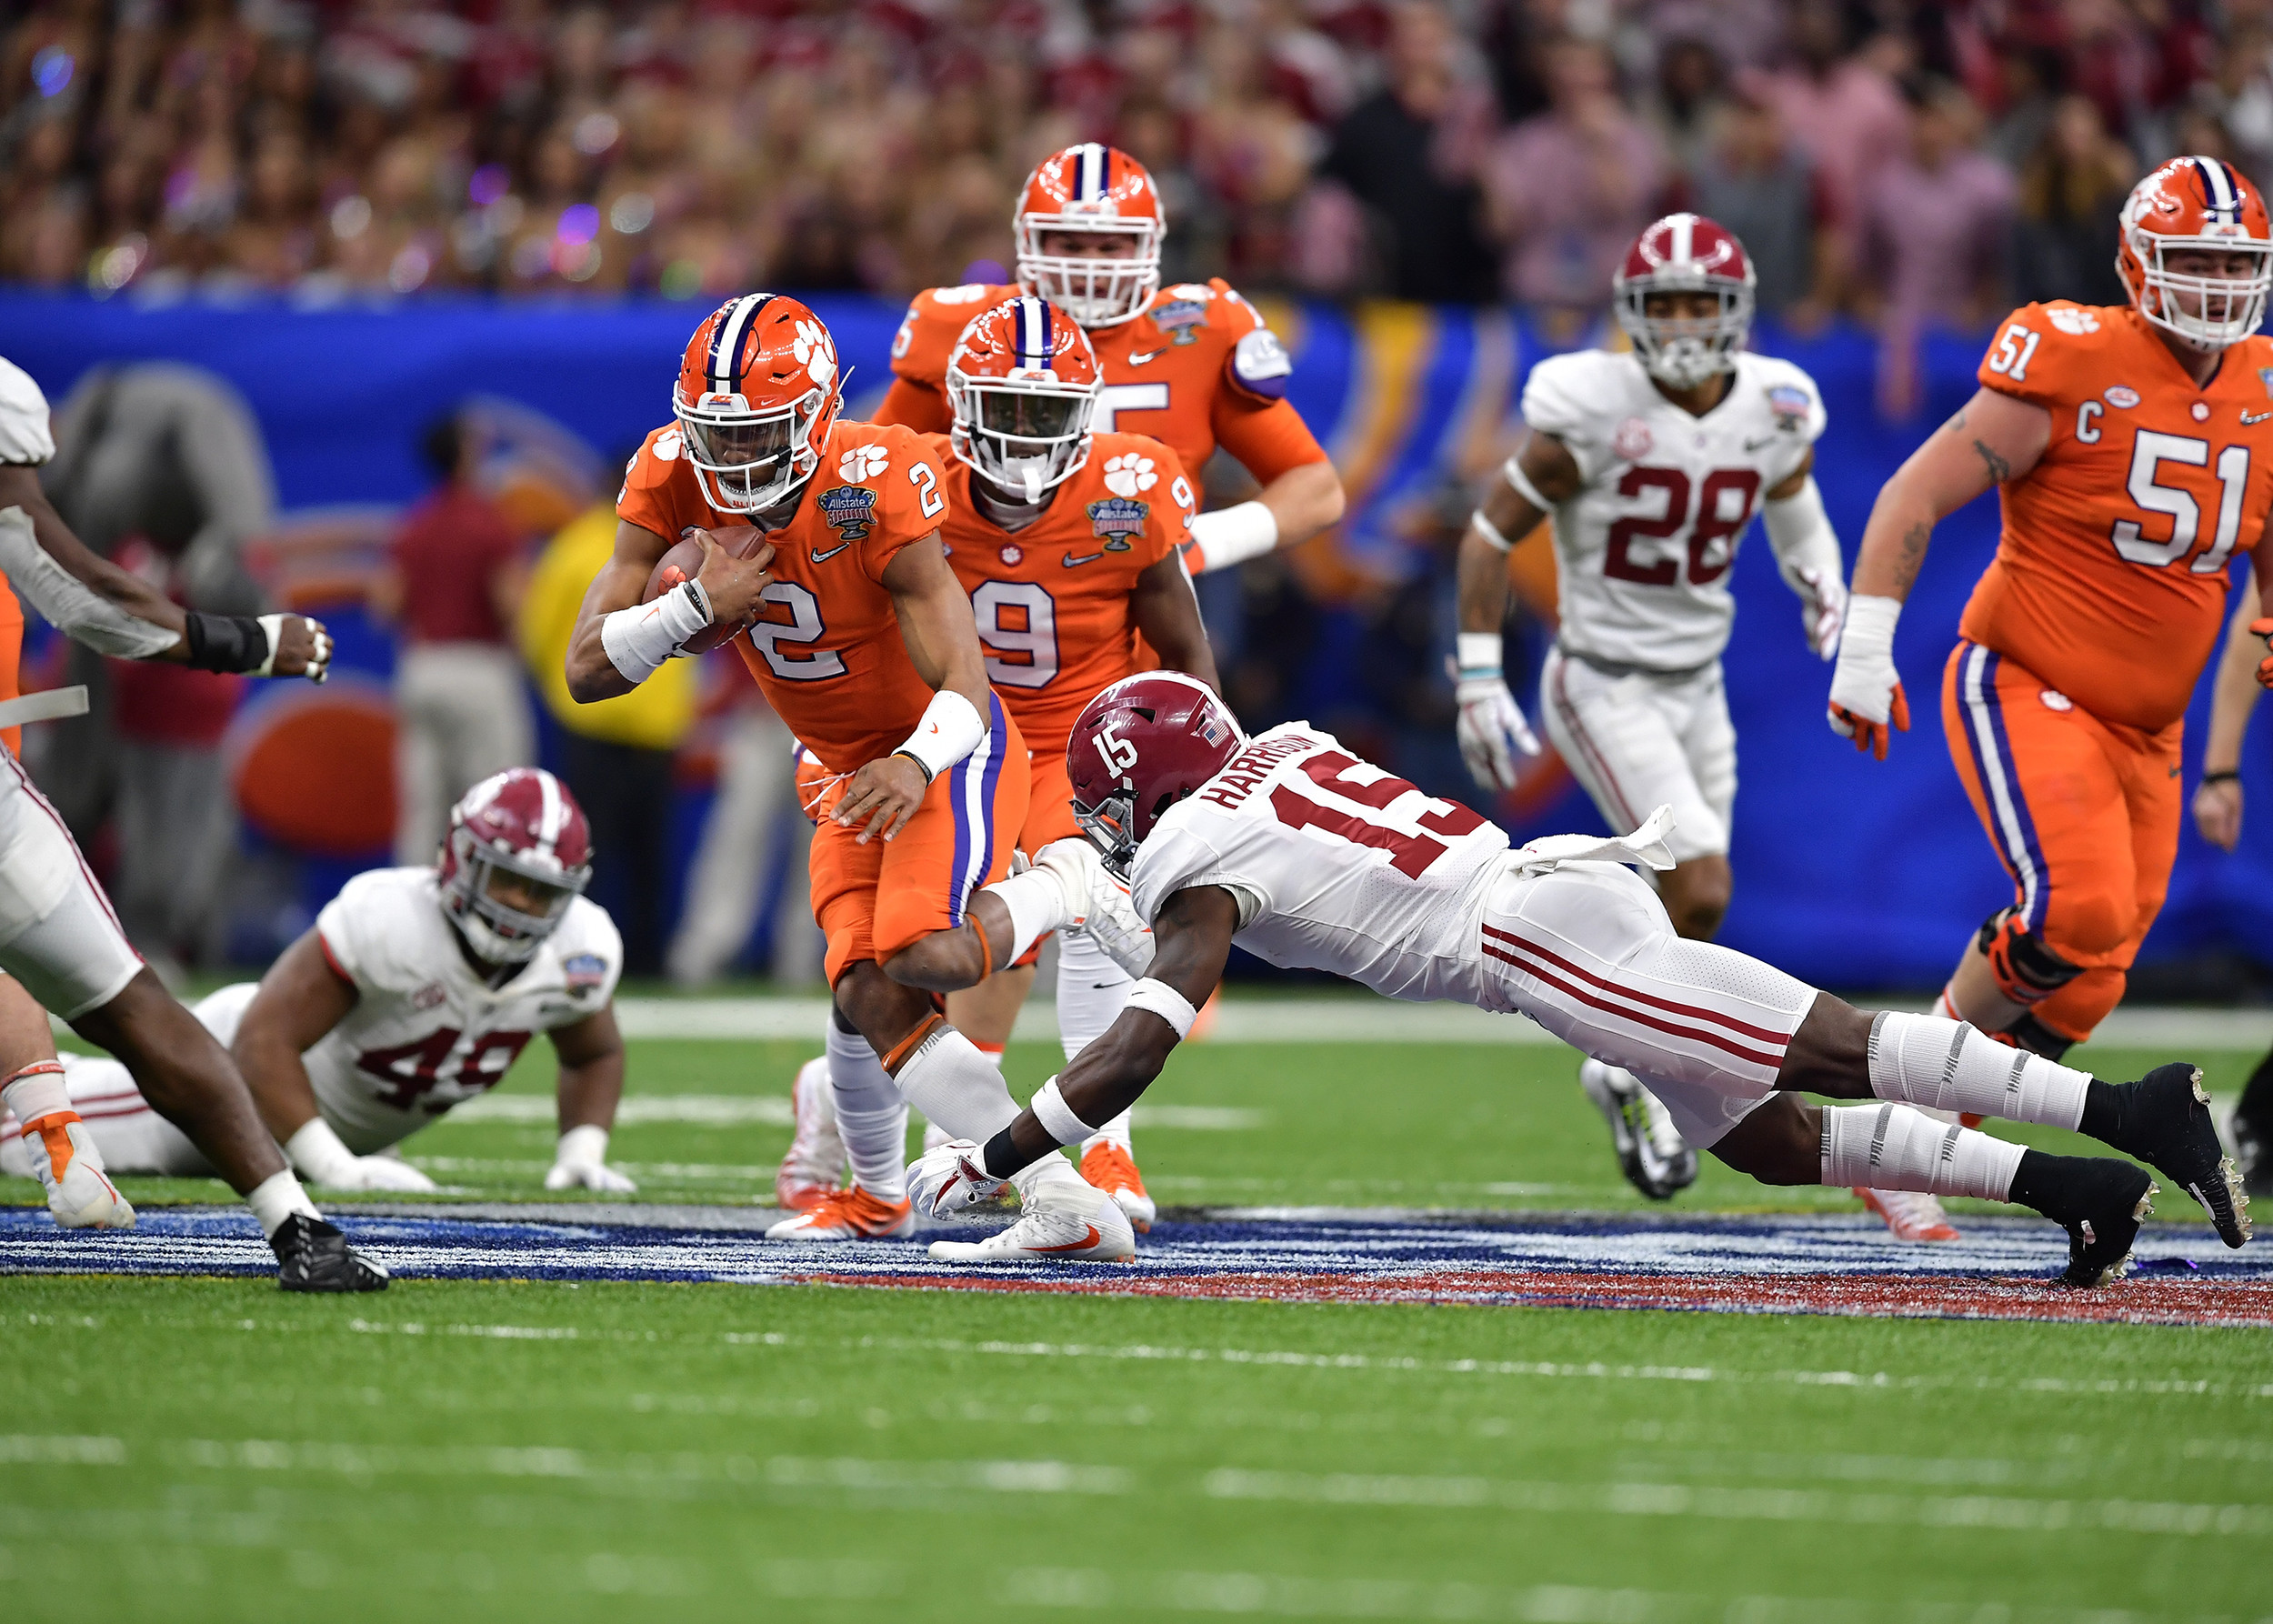 Clemson Tigers quarterback Kelly Bryant (2) tries to avoid another sack in the second half of the 2018 AllState Sugar Bowl on Jan. 1, 2018, at the Mercedes-Benz SuperDome in New Orleans, La. Alabama won the game 24-6. (Photo by Lee Walls)